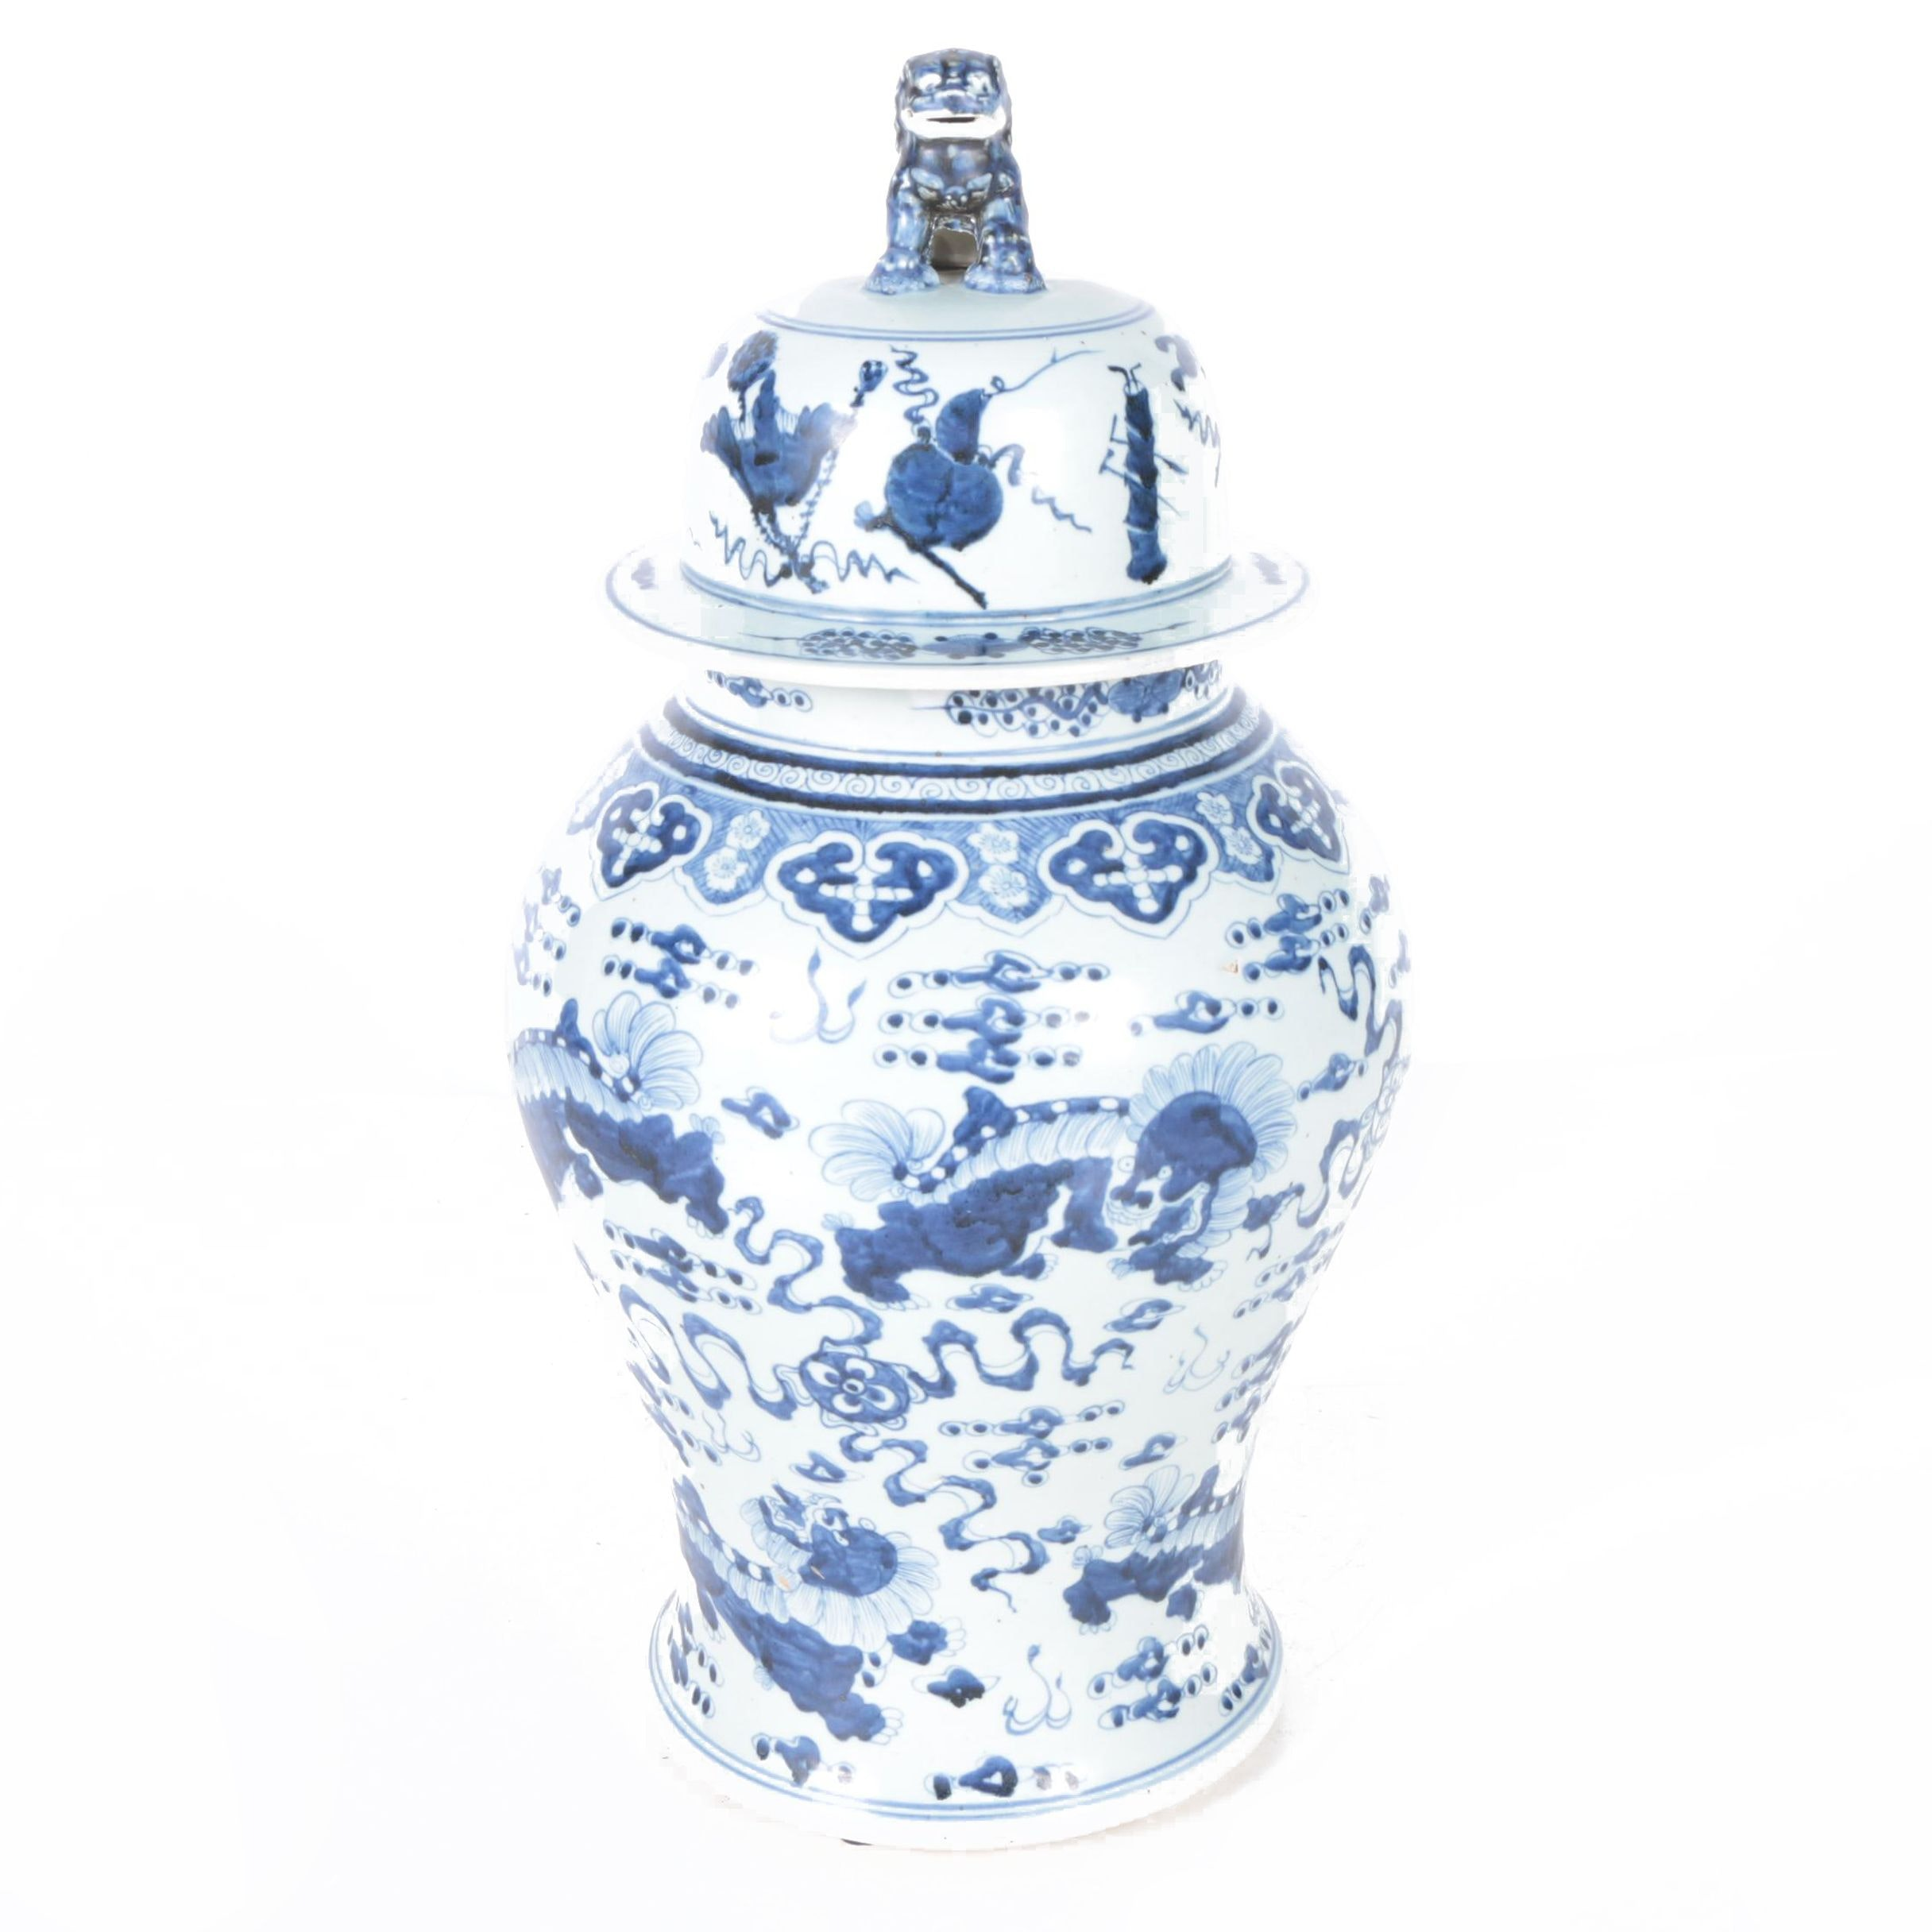 Chinese Ceramic Ginger Jar with Guardian Lion Lid